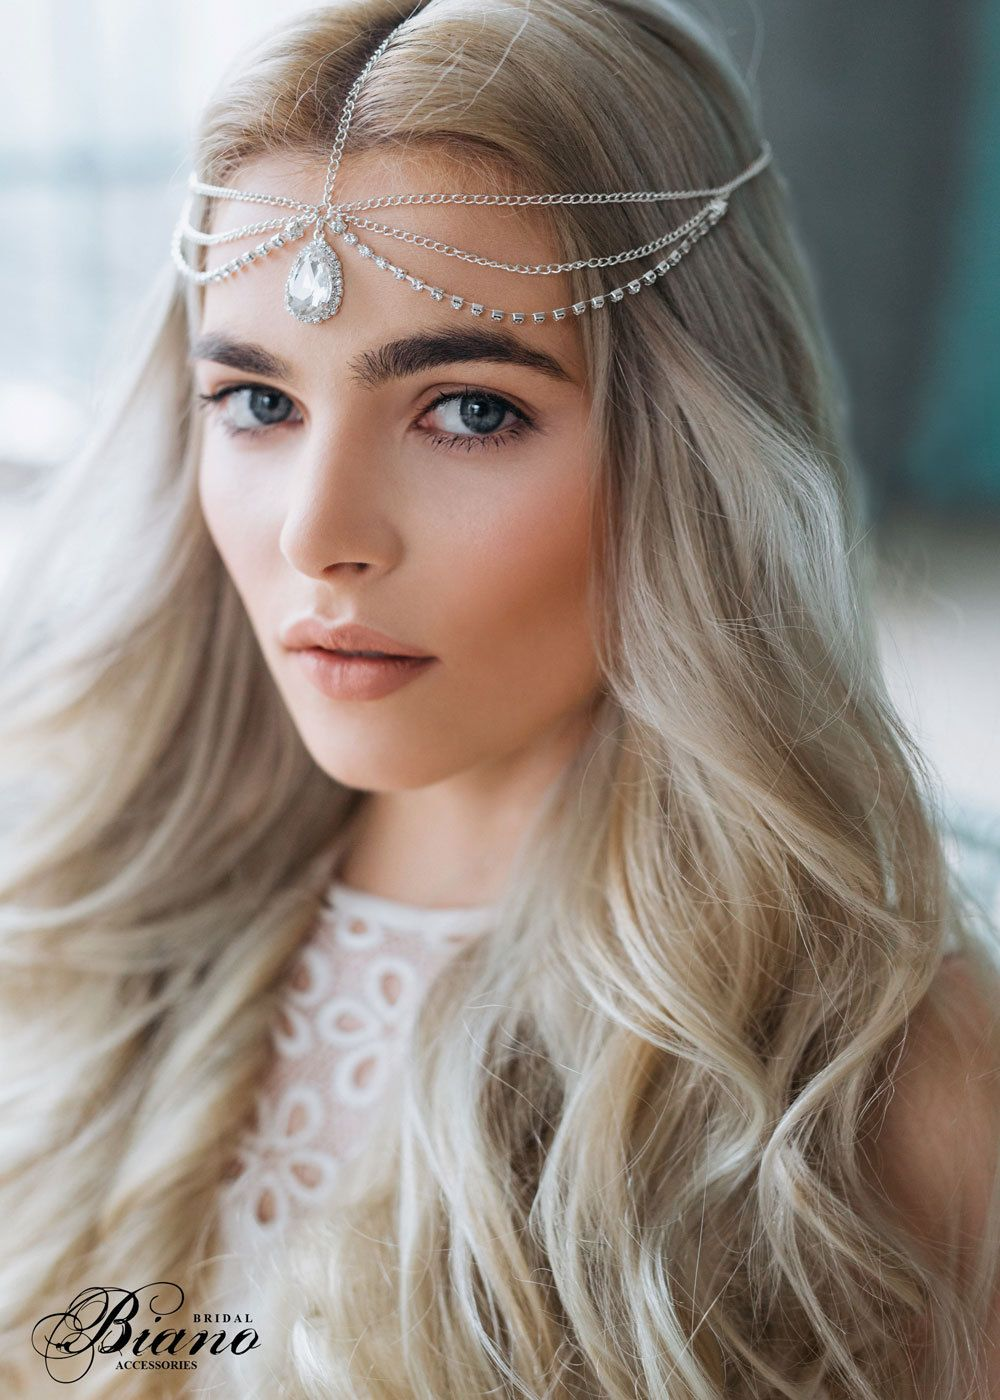 Wedding Headpiece Hair Jewelry | Fade Haircut